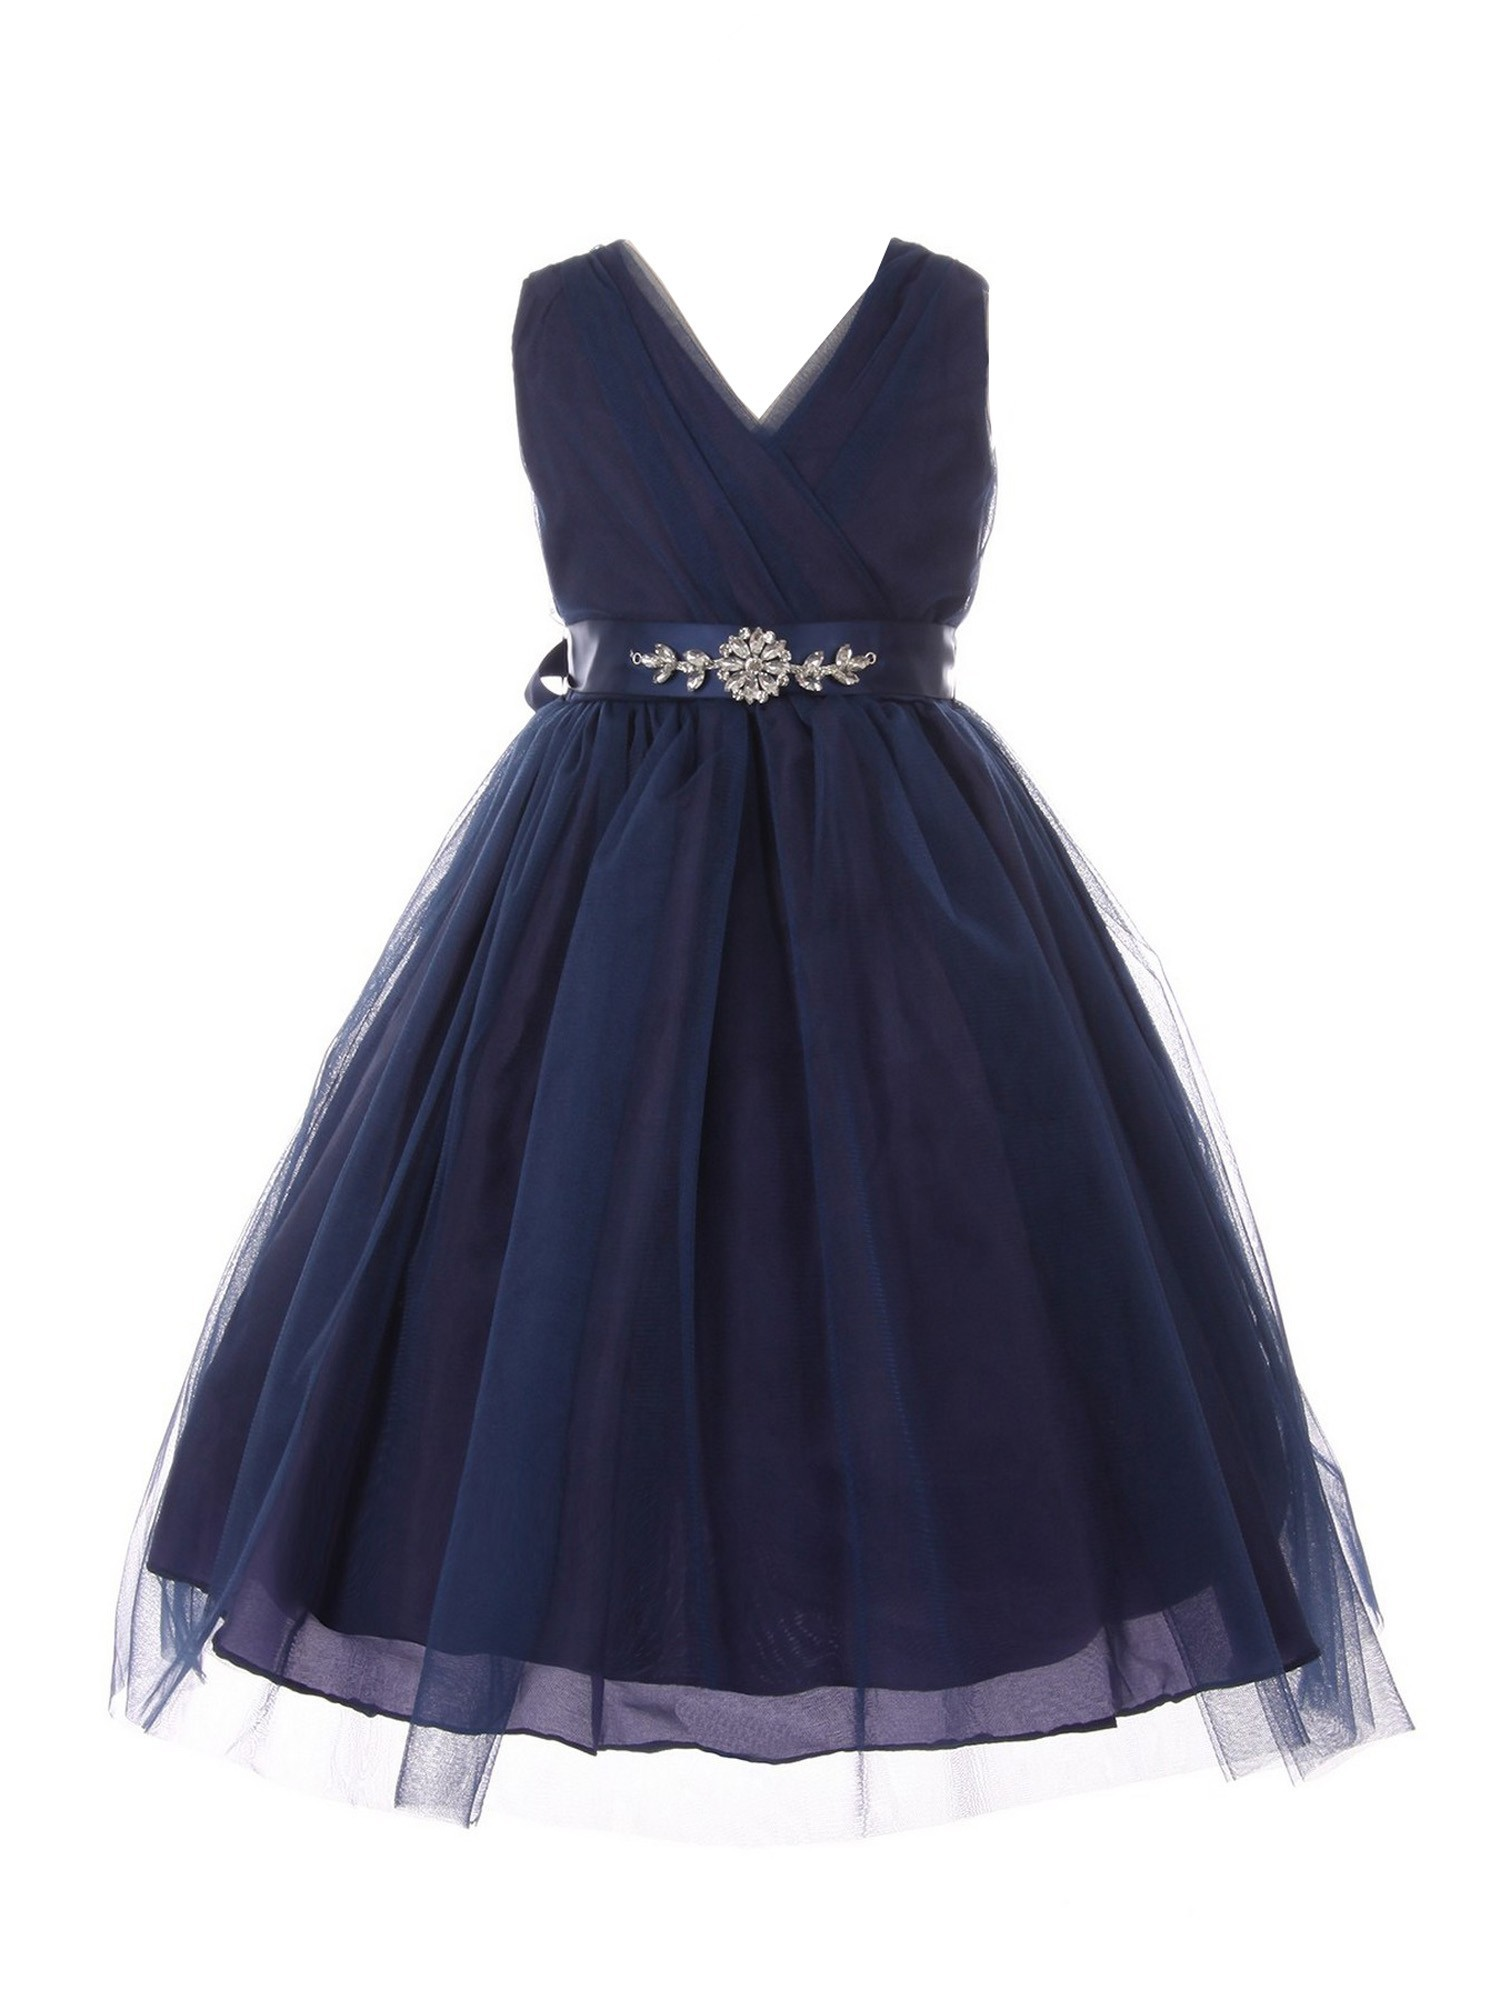 903e1cb7b4e41 Little Girls Navy Rhinestone Satin Sash V-Neck Tulle Flower Girl Dress 2-6